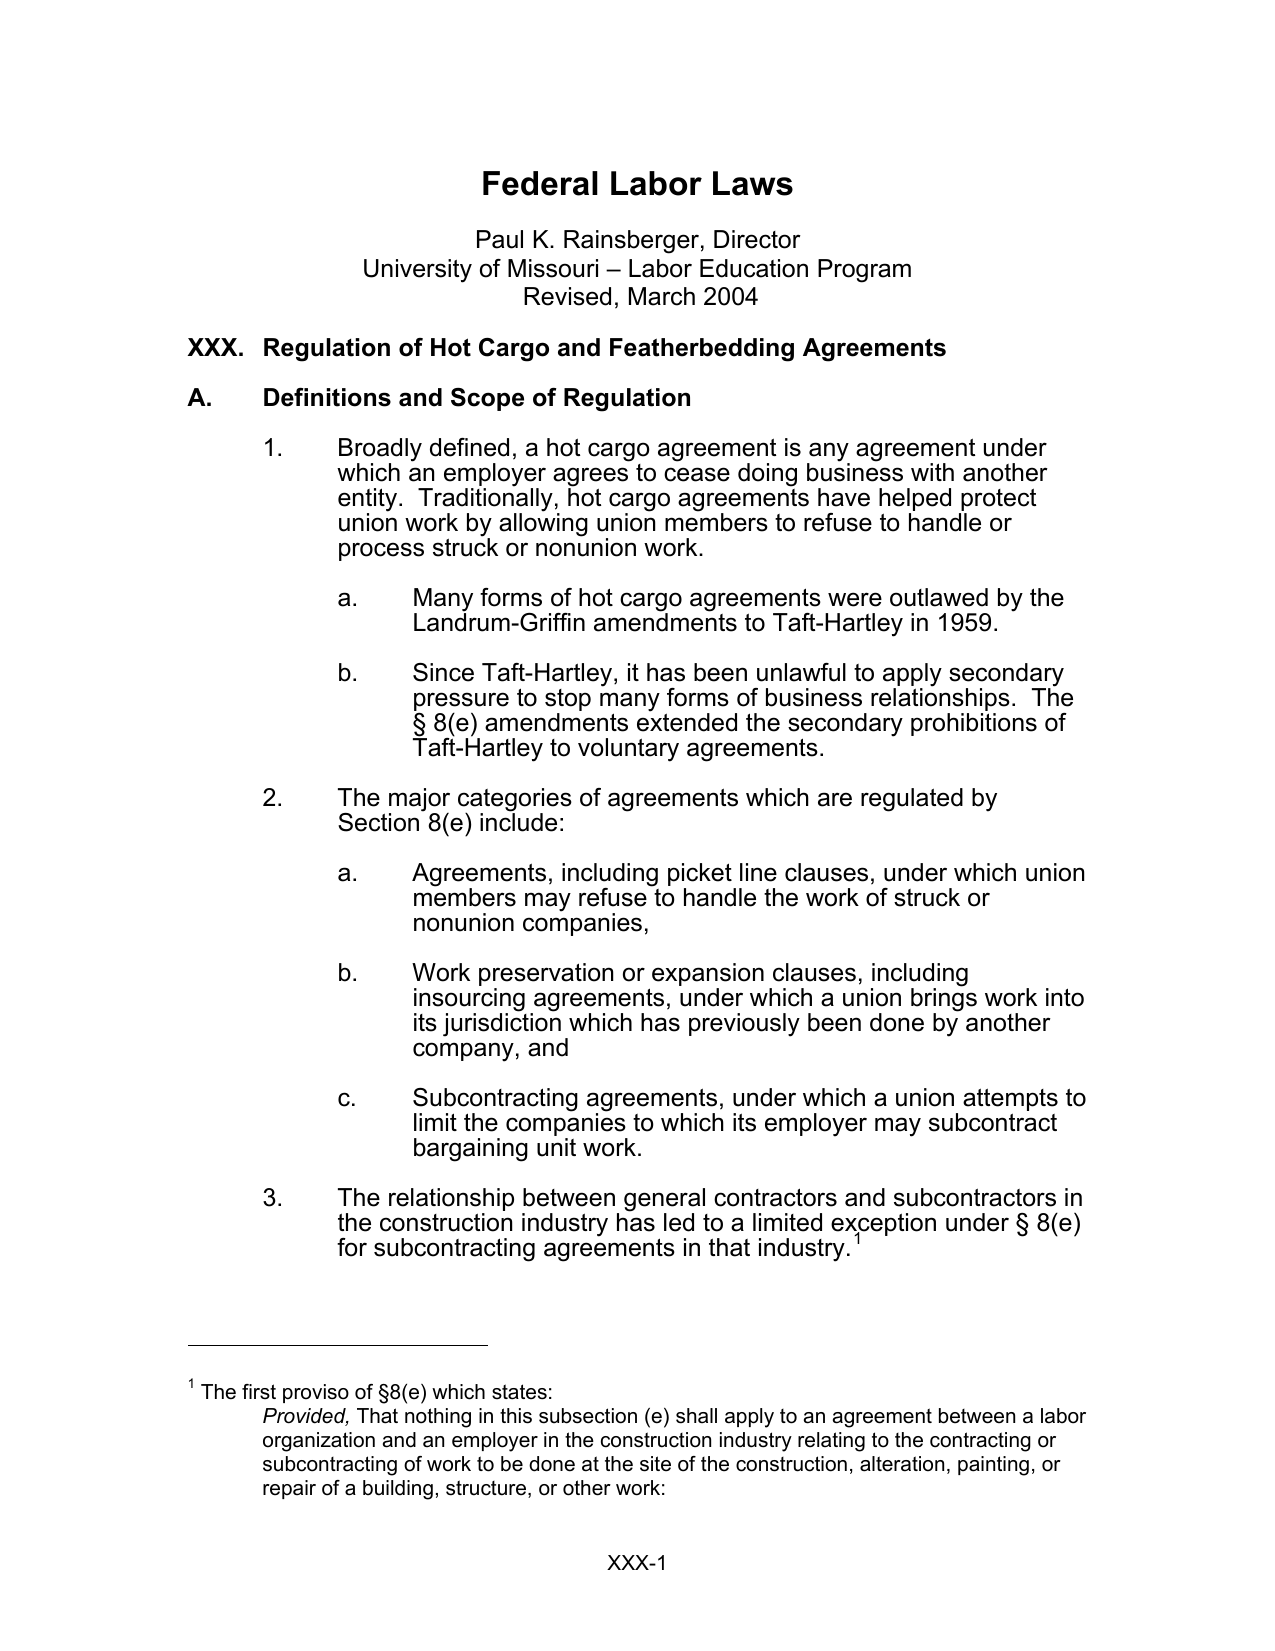 Regulation of hot cargo and featherbedding agreements